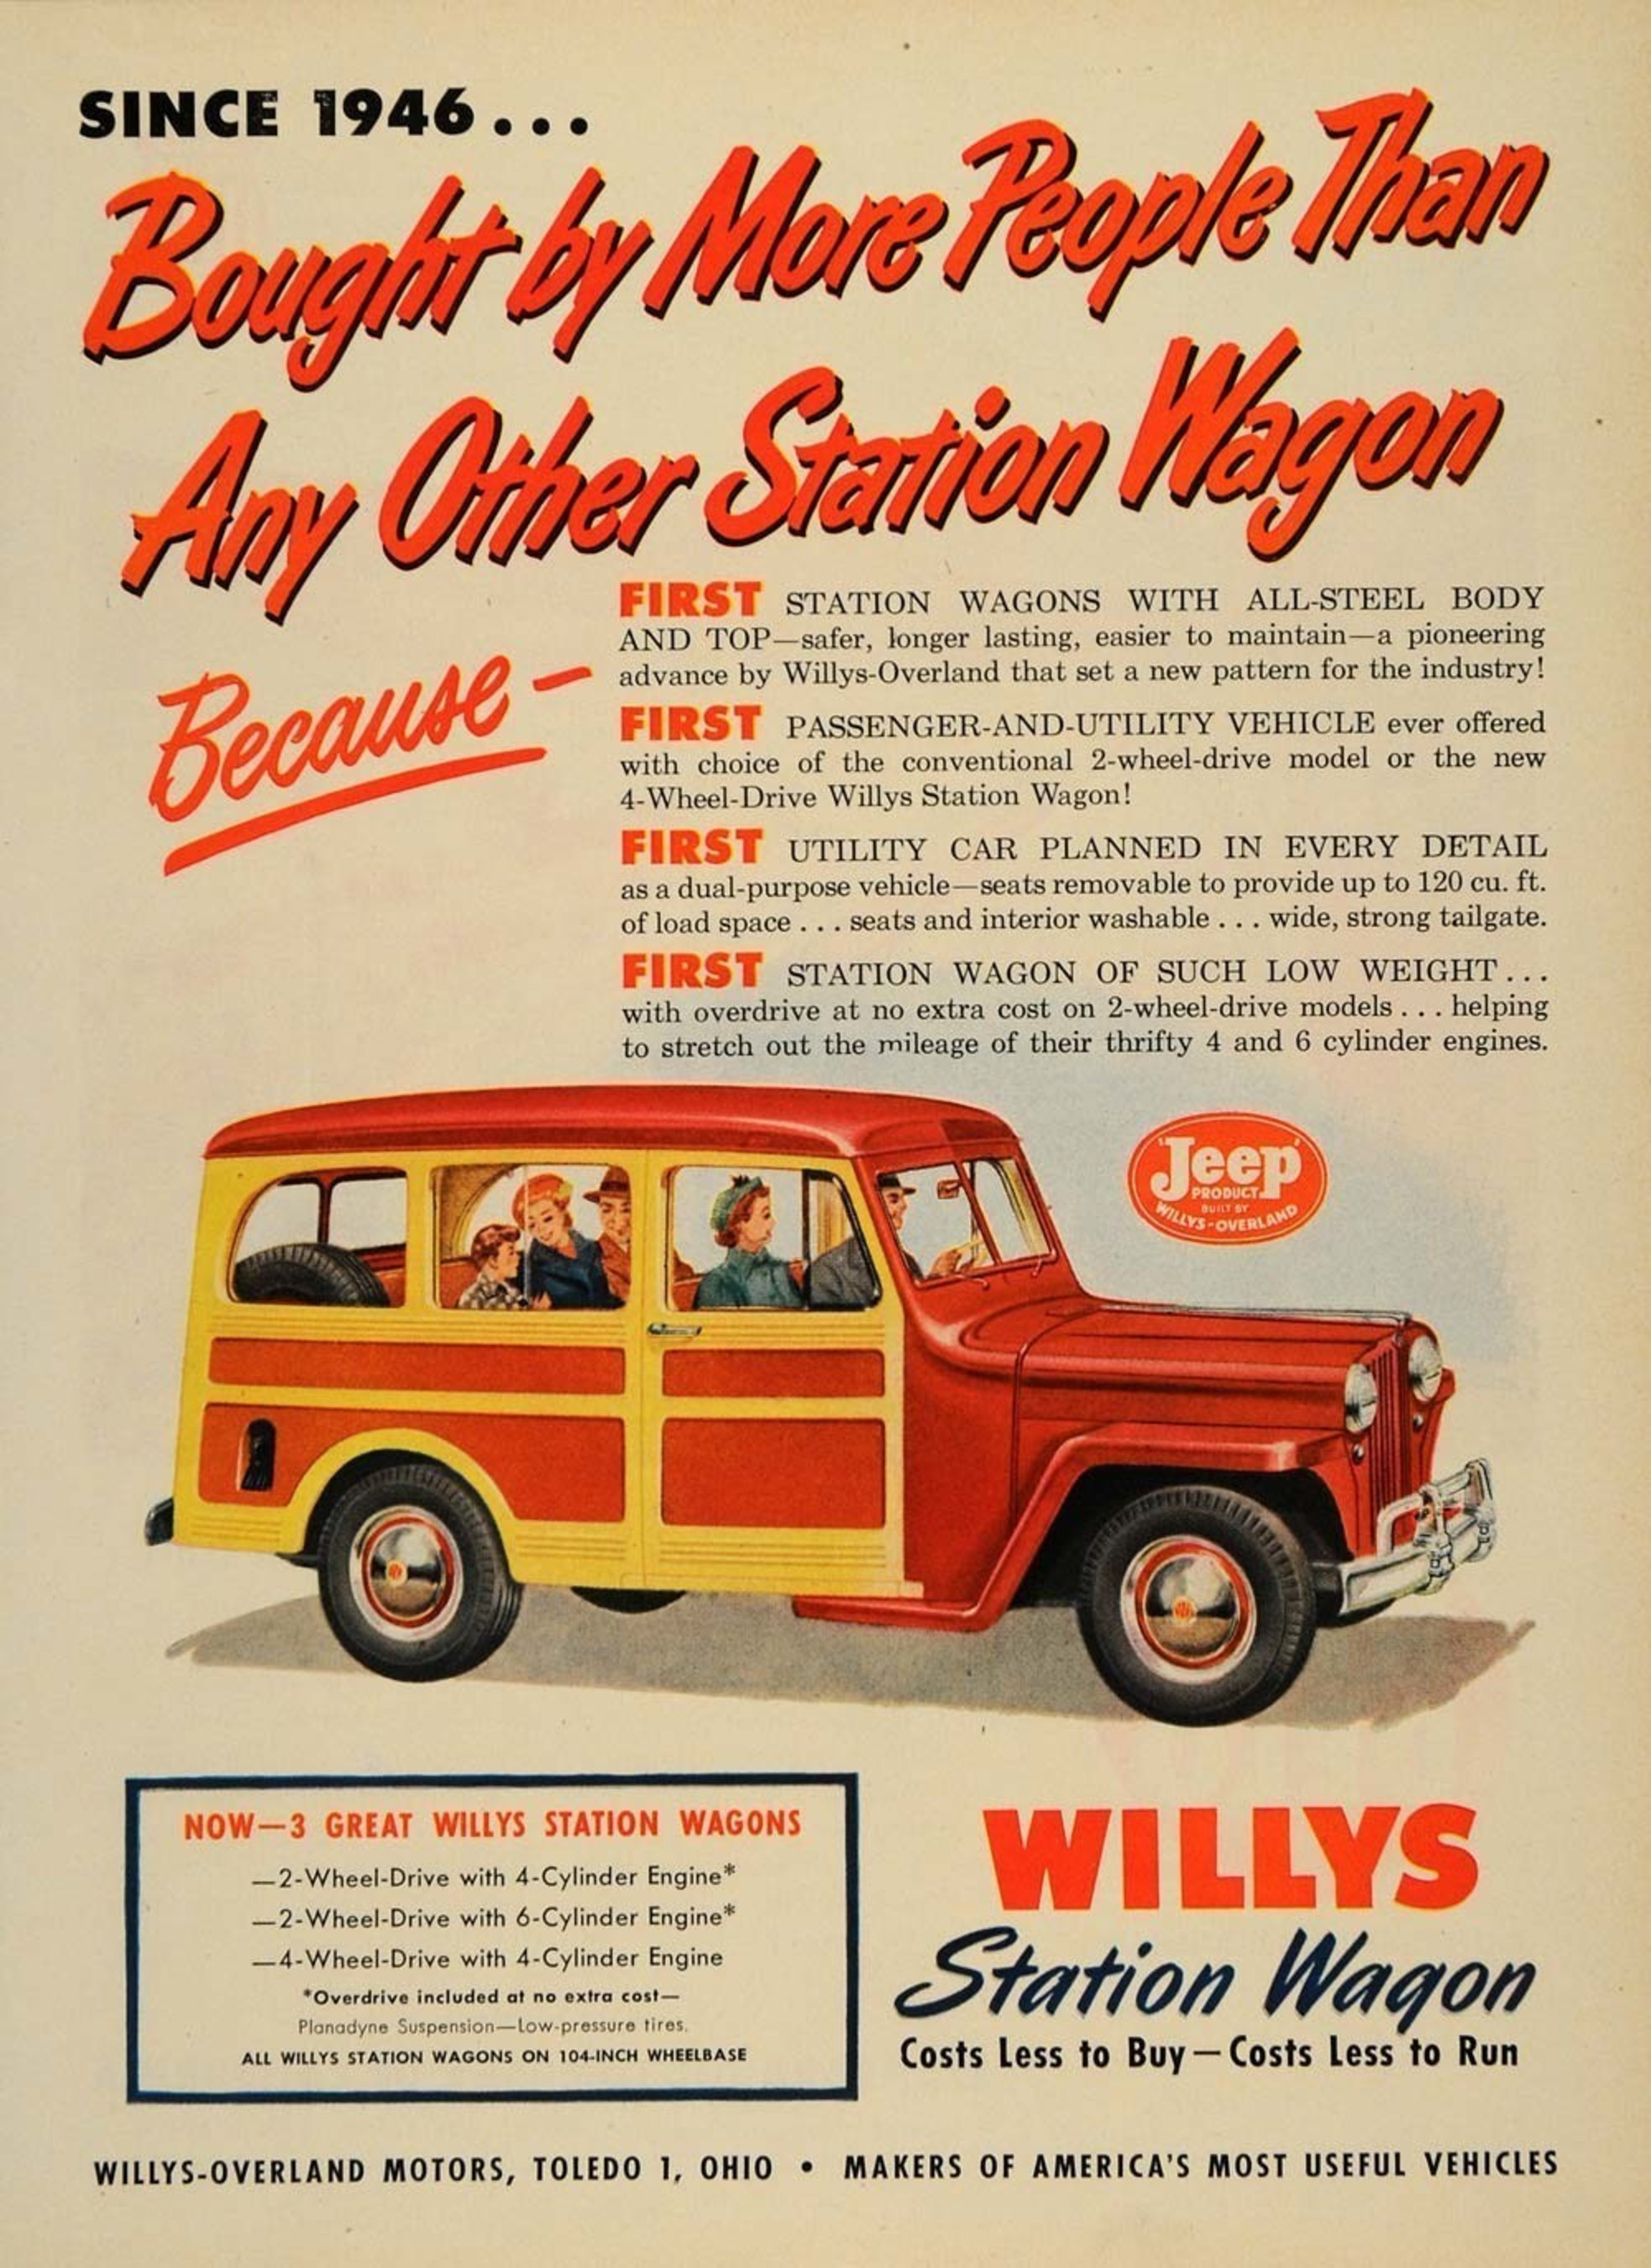 12 Facts Youll Want To Know About Jeep History 1941 Willys Station Wagon Prior The War Woodie Wagons Were Expensive Hand Crafted Wood Paneled Luxury